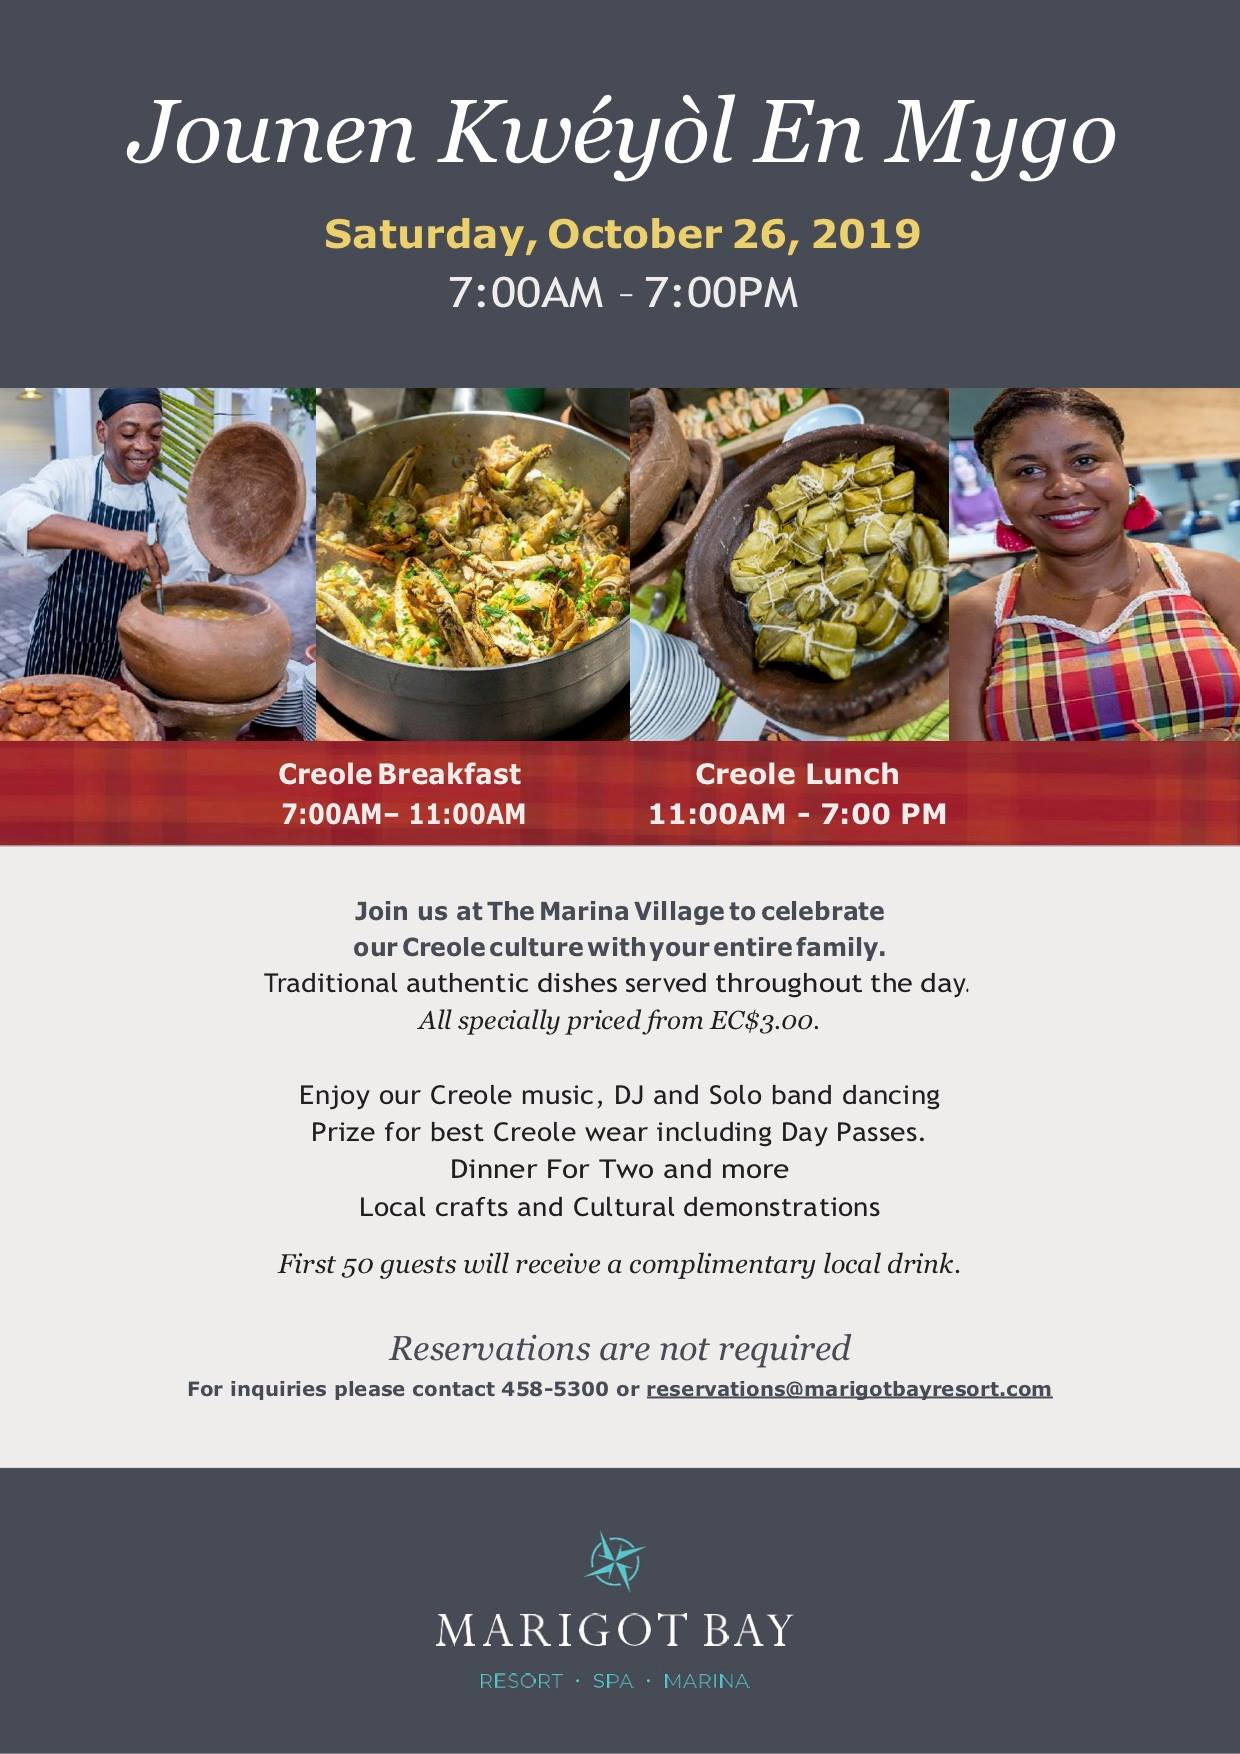 Dishes from $3 at Marigot bay resort creole heritage celebration